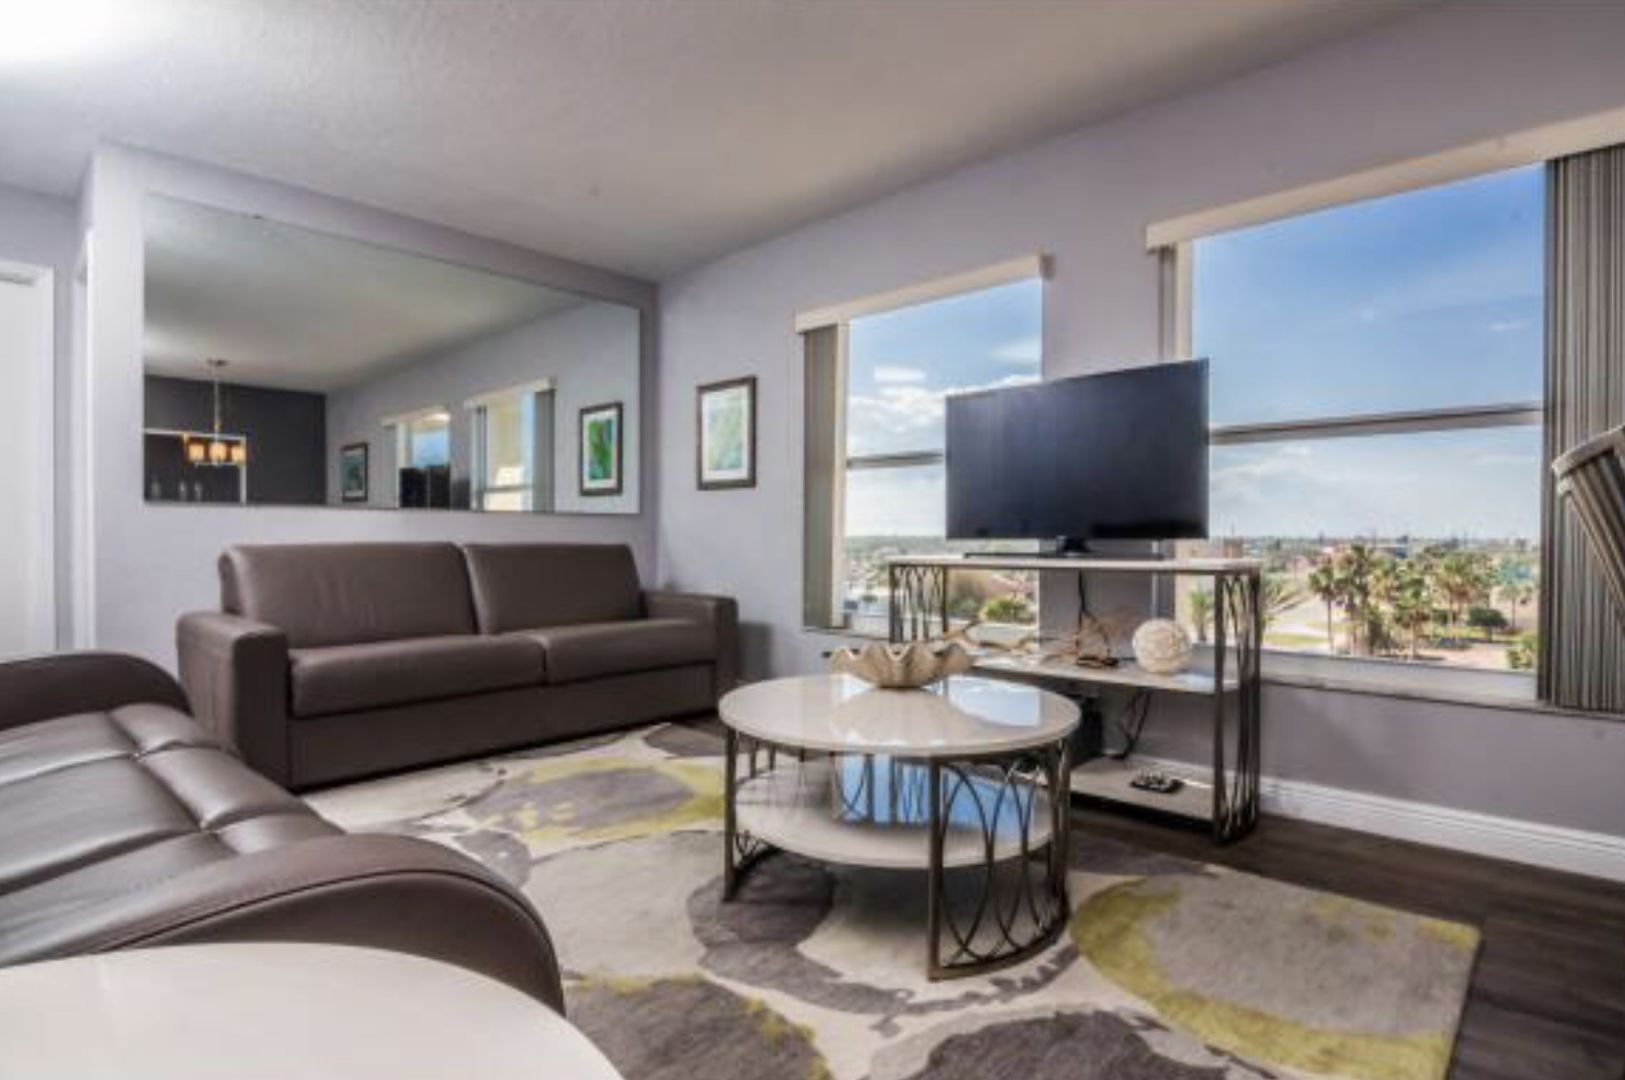 Condo Rental with easy access to the Beach in New Smyrna Beach